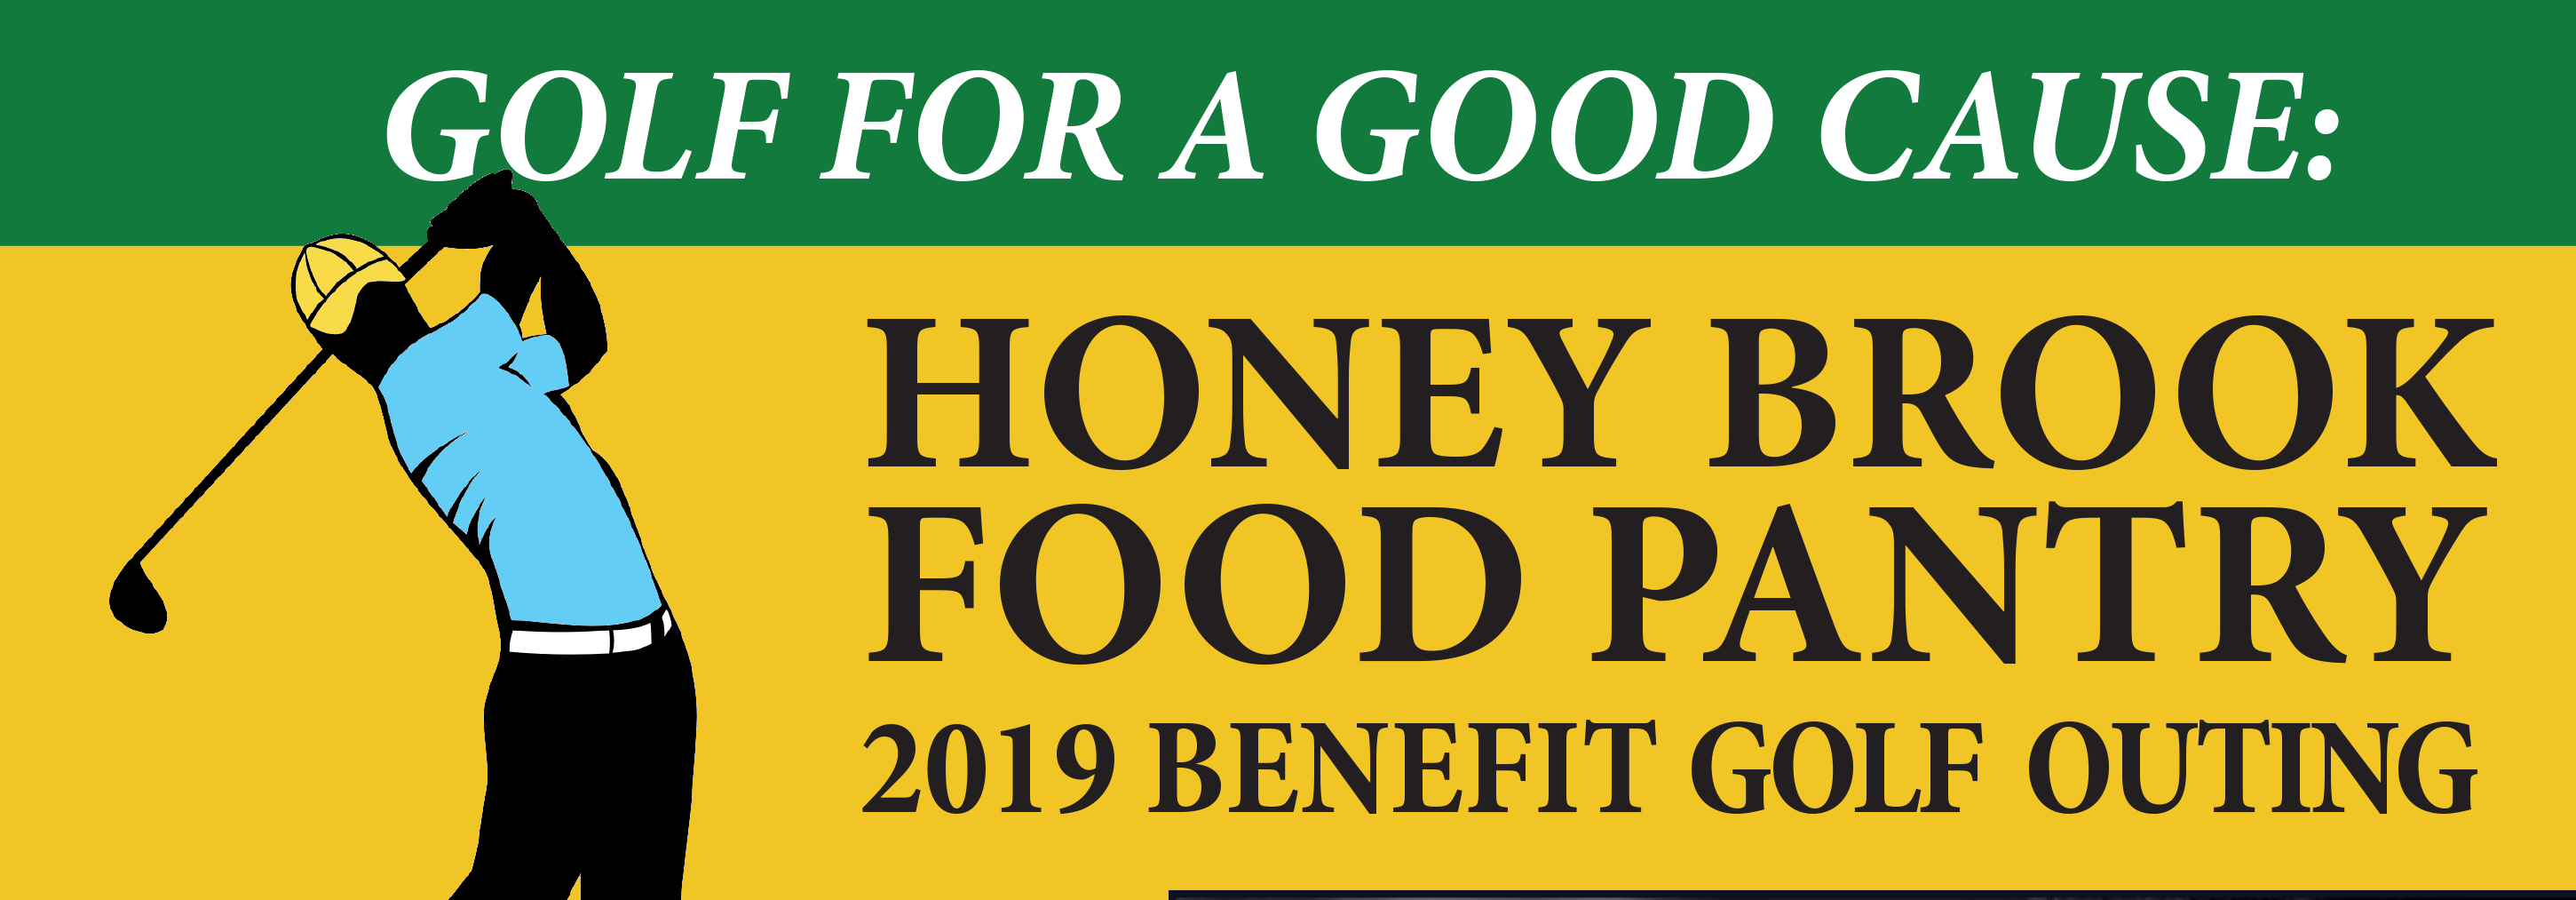 Honey Brook Food Pantry Golf Outing